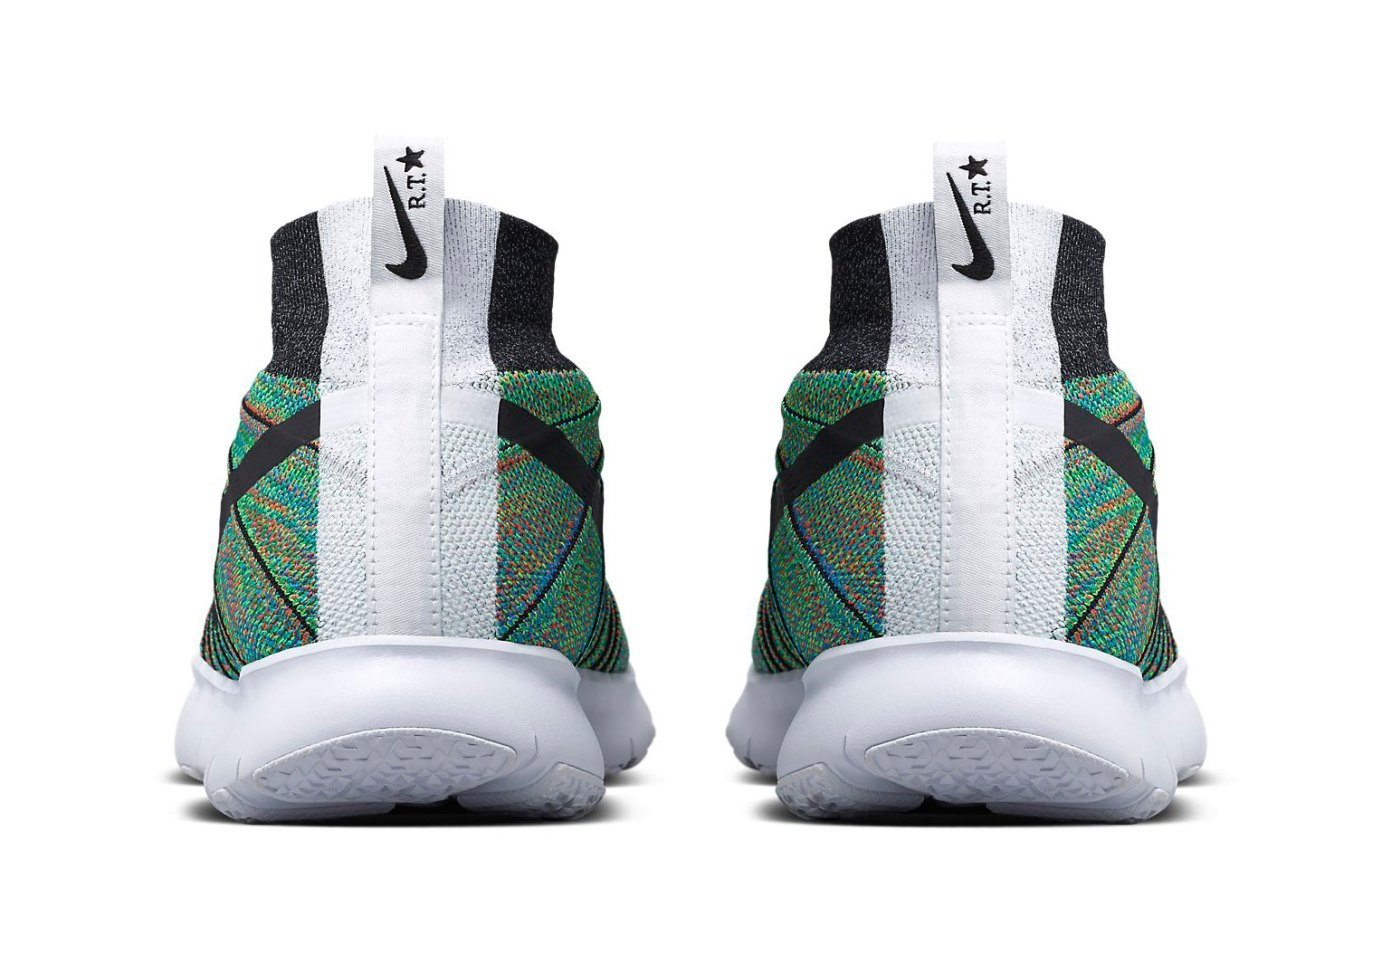 nike-lab-riccardo-tisci-collaboration-kaleidoscope-20160811